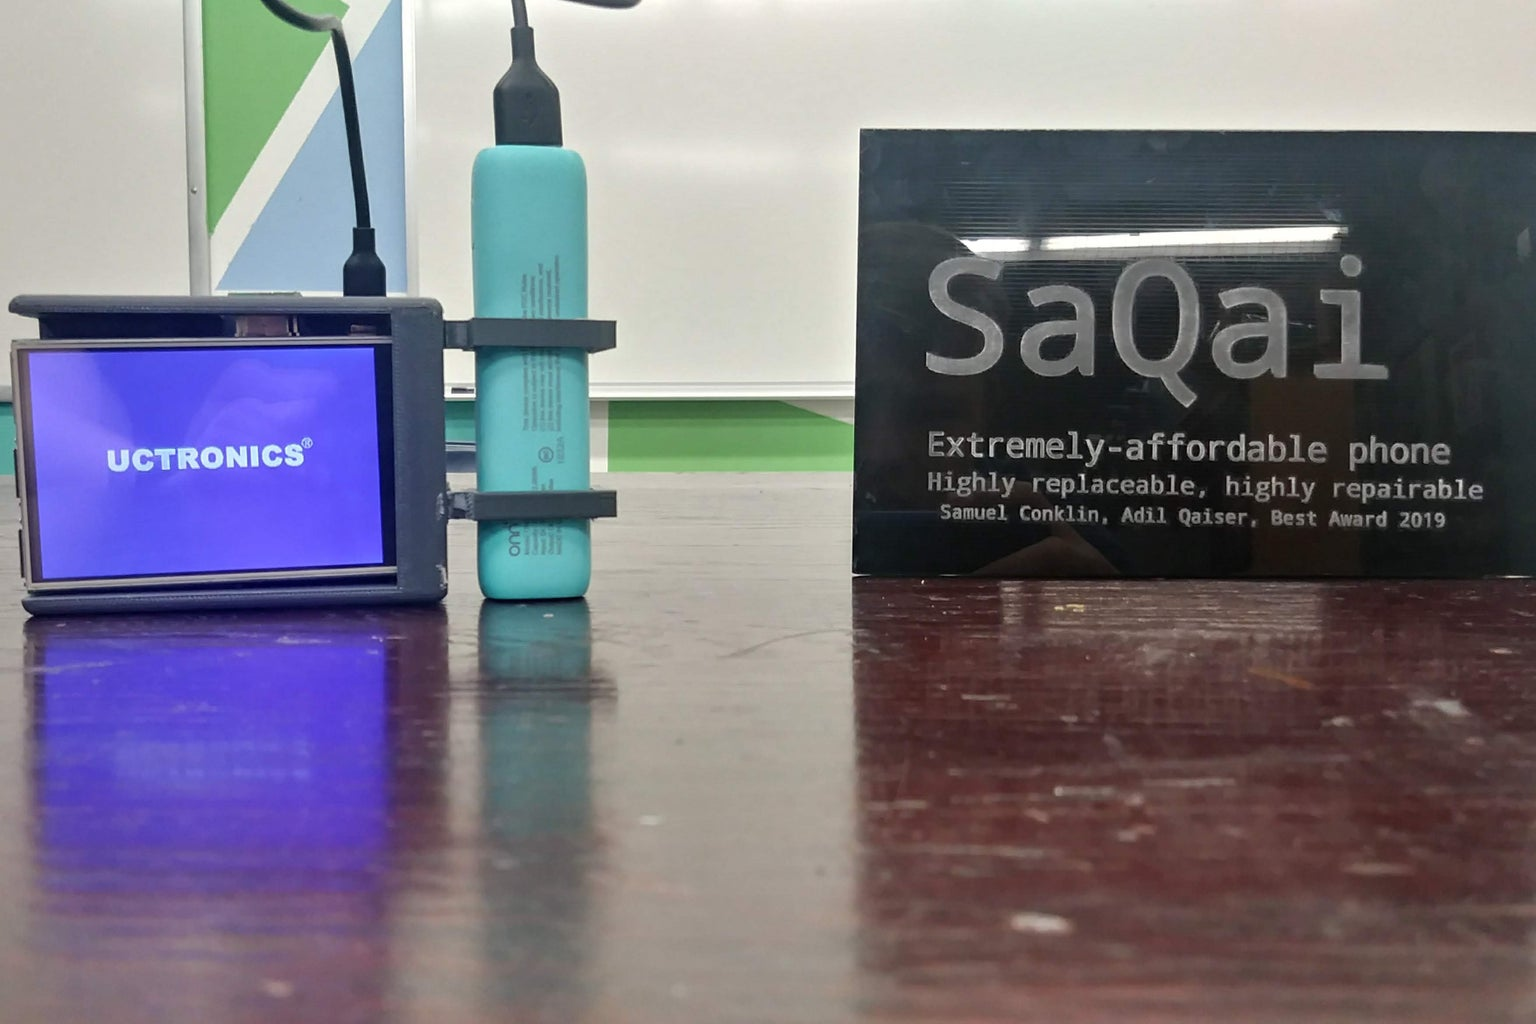 SaQai: Extremely-Affordable Phone